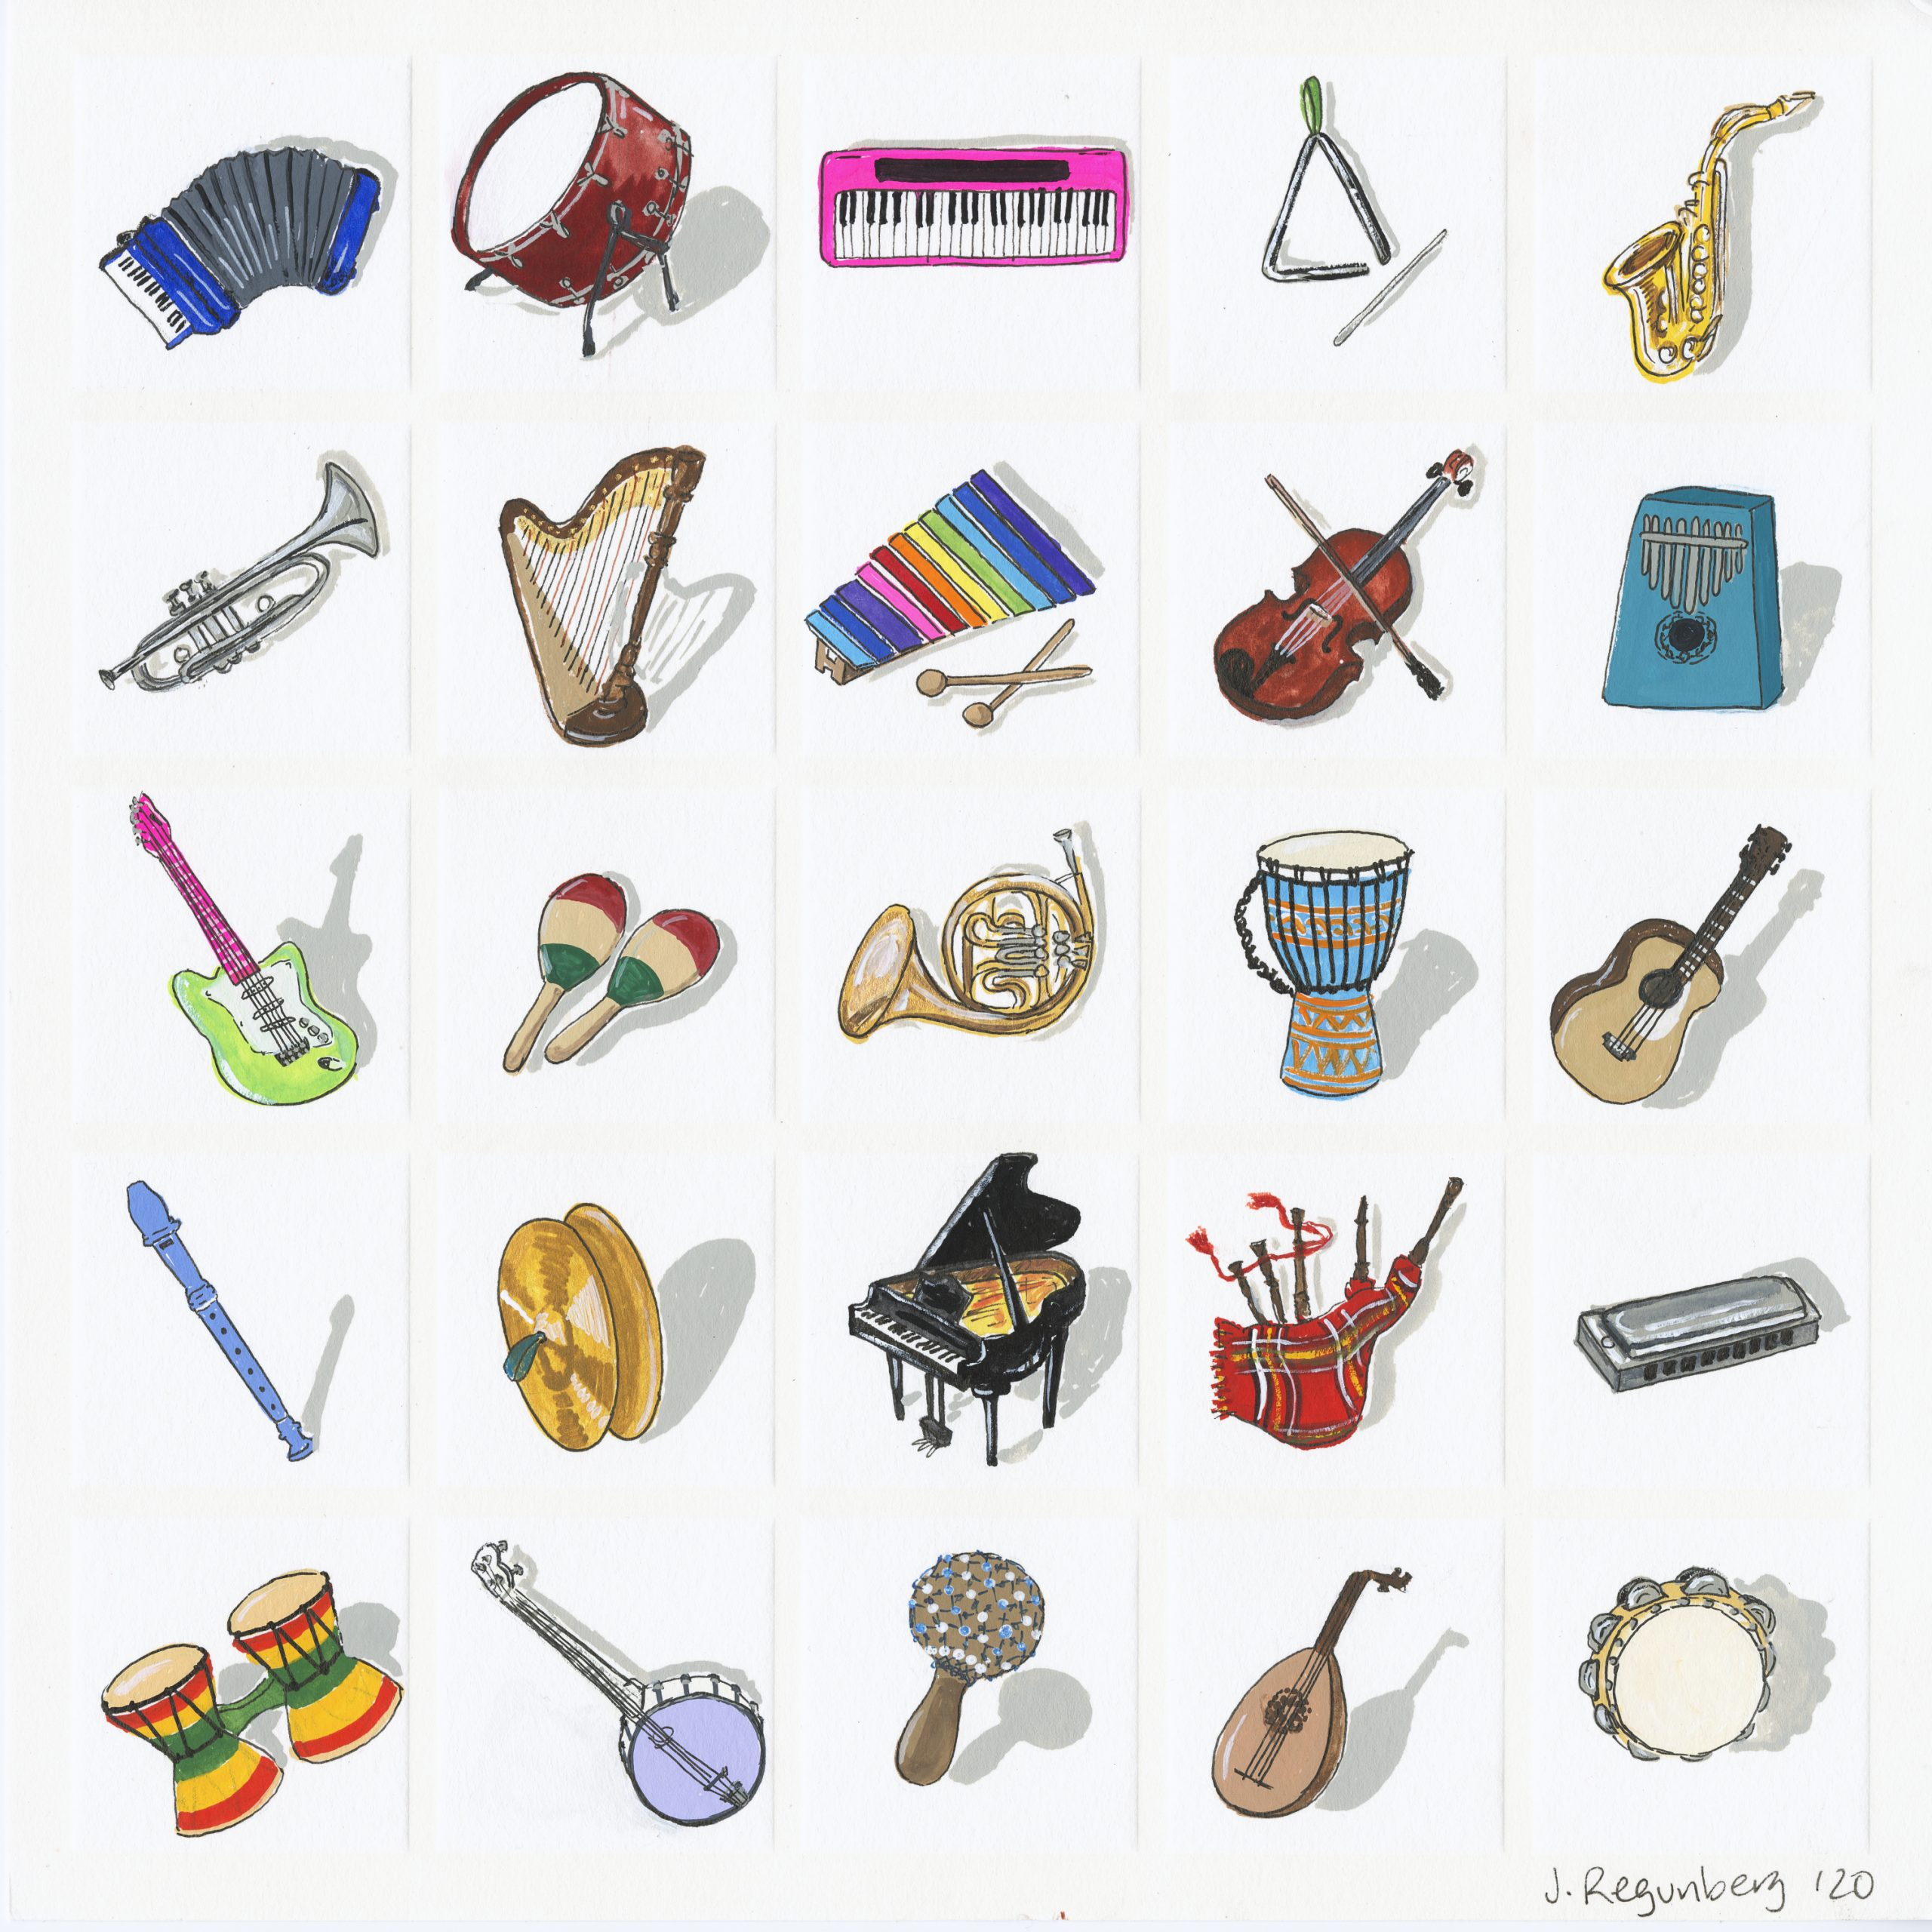 I is for Instruments